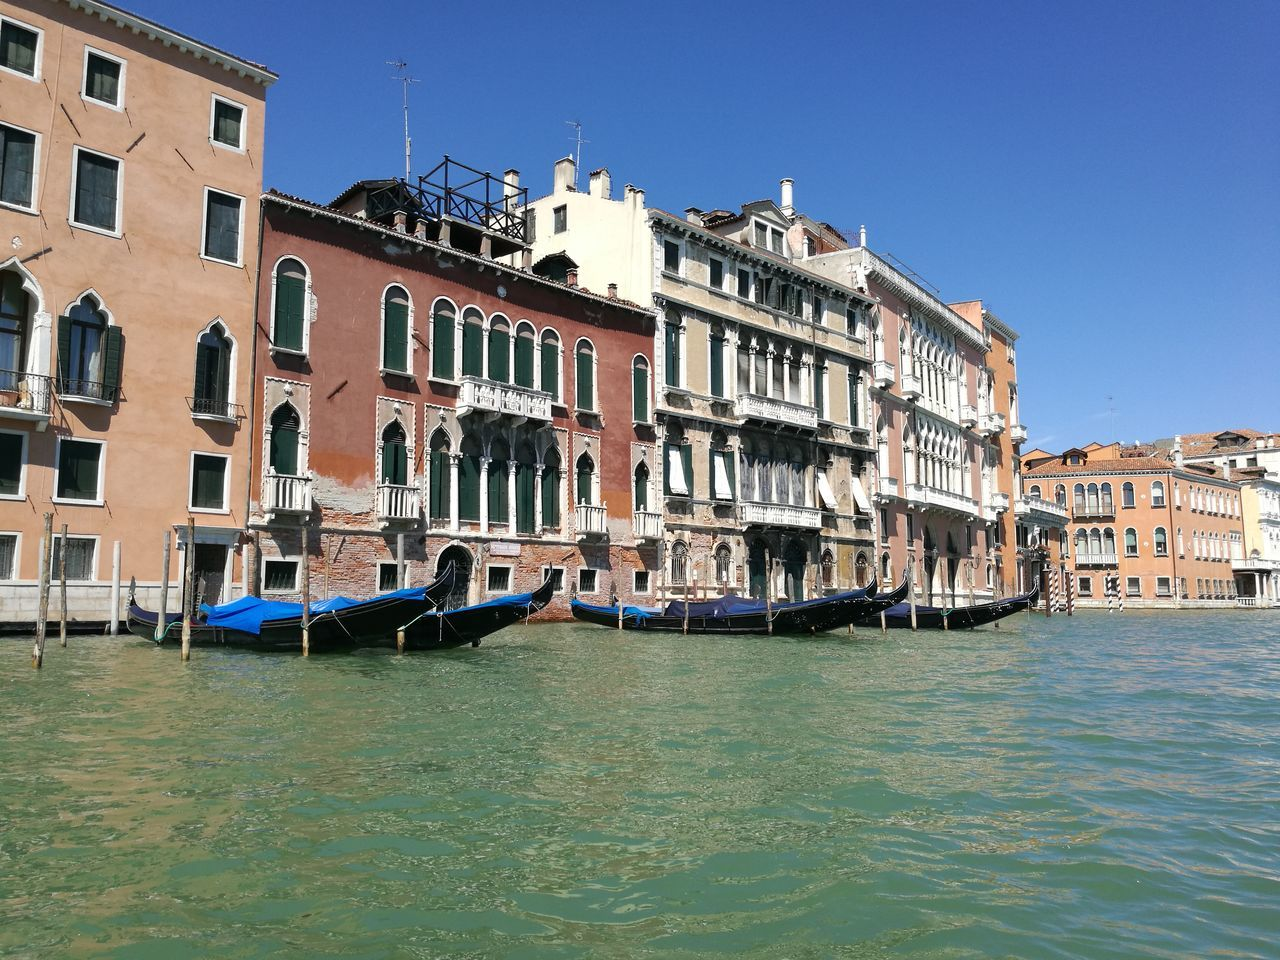 architecture, building exterior, canal, transportation, nautical vessel, water, clear sky, gondola - traditional boat, outdoors, built structure, day, no people, city